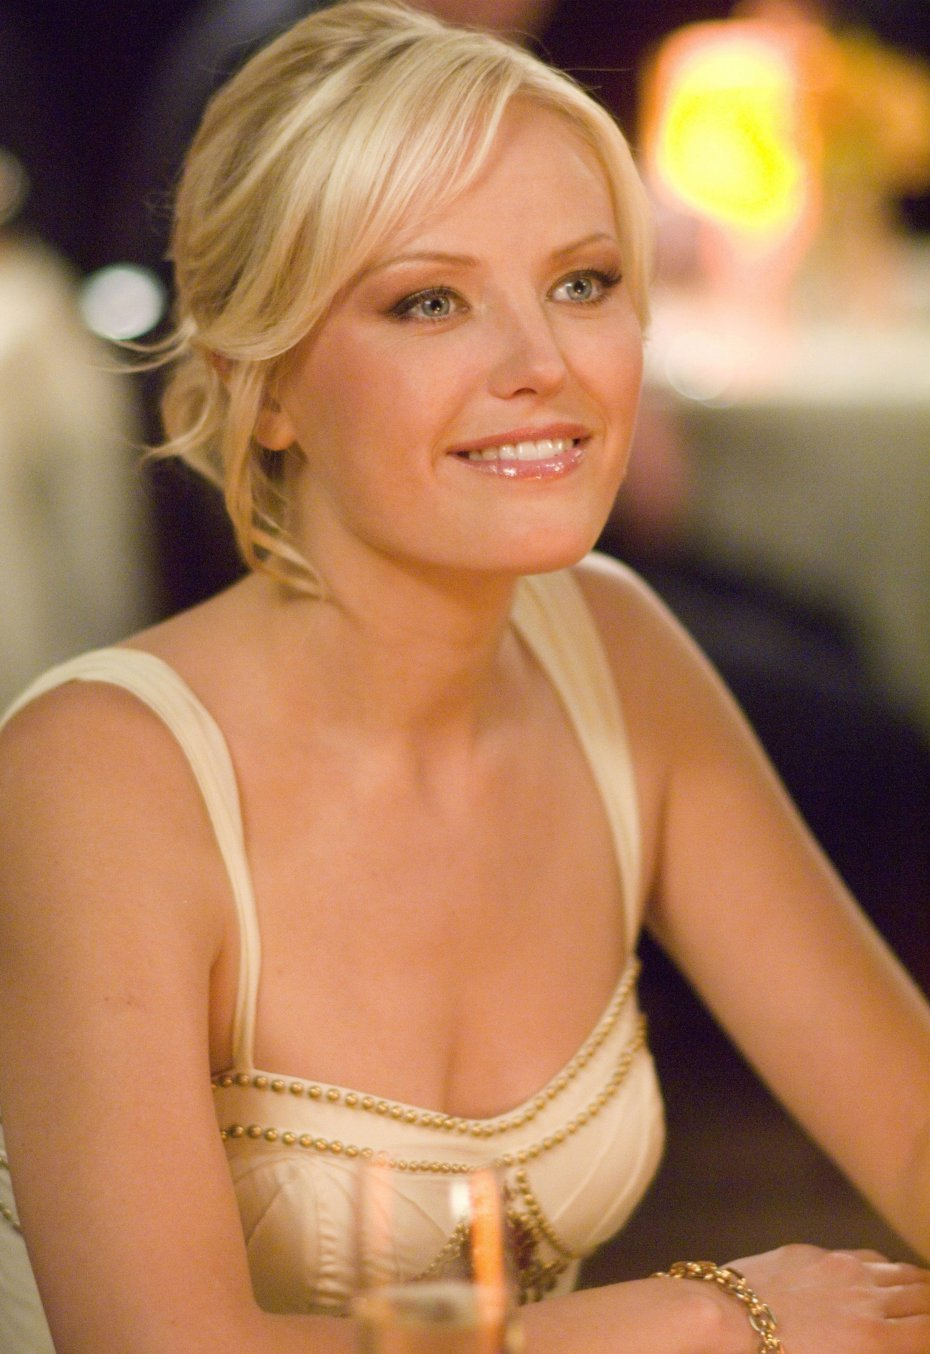 About Malin Akerman Profile   Malin Akerman ImagesMalin Akerman